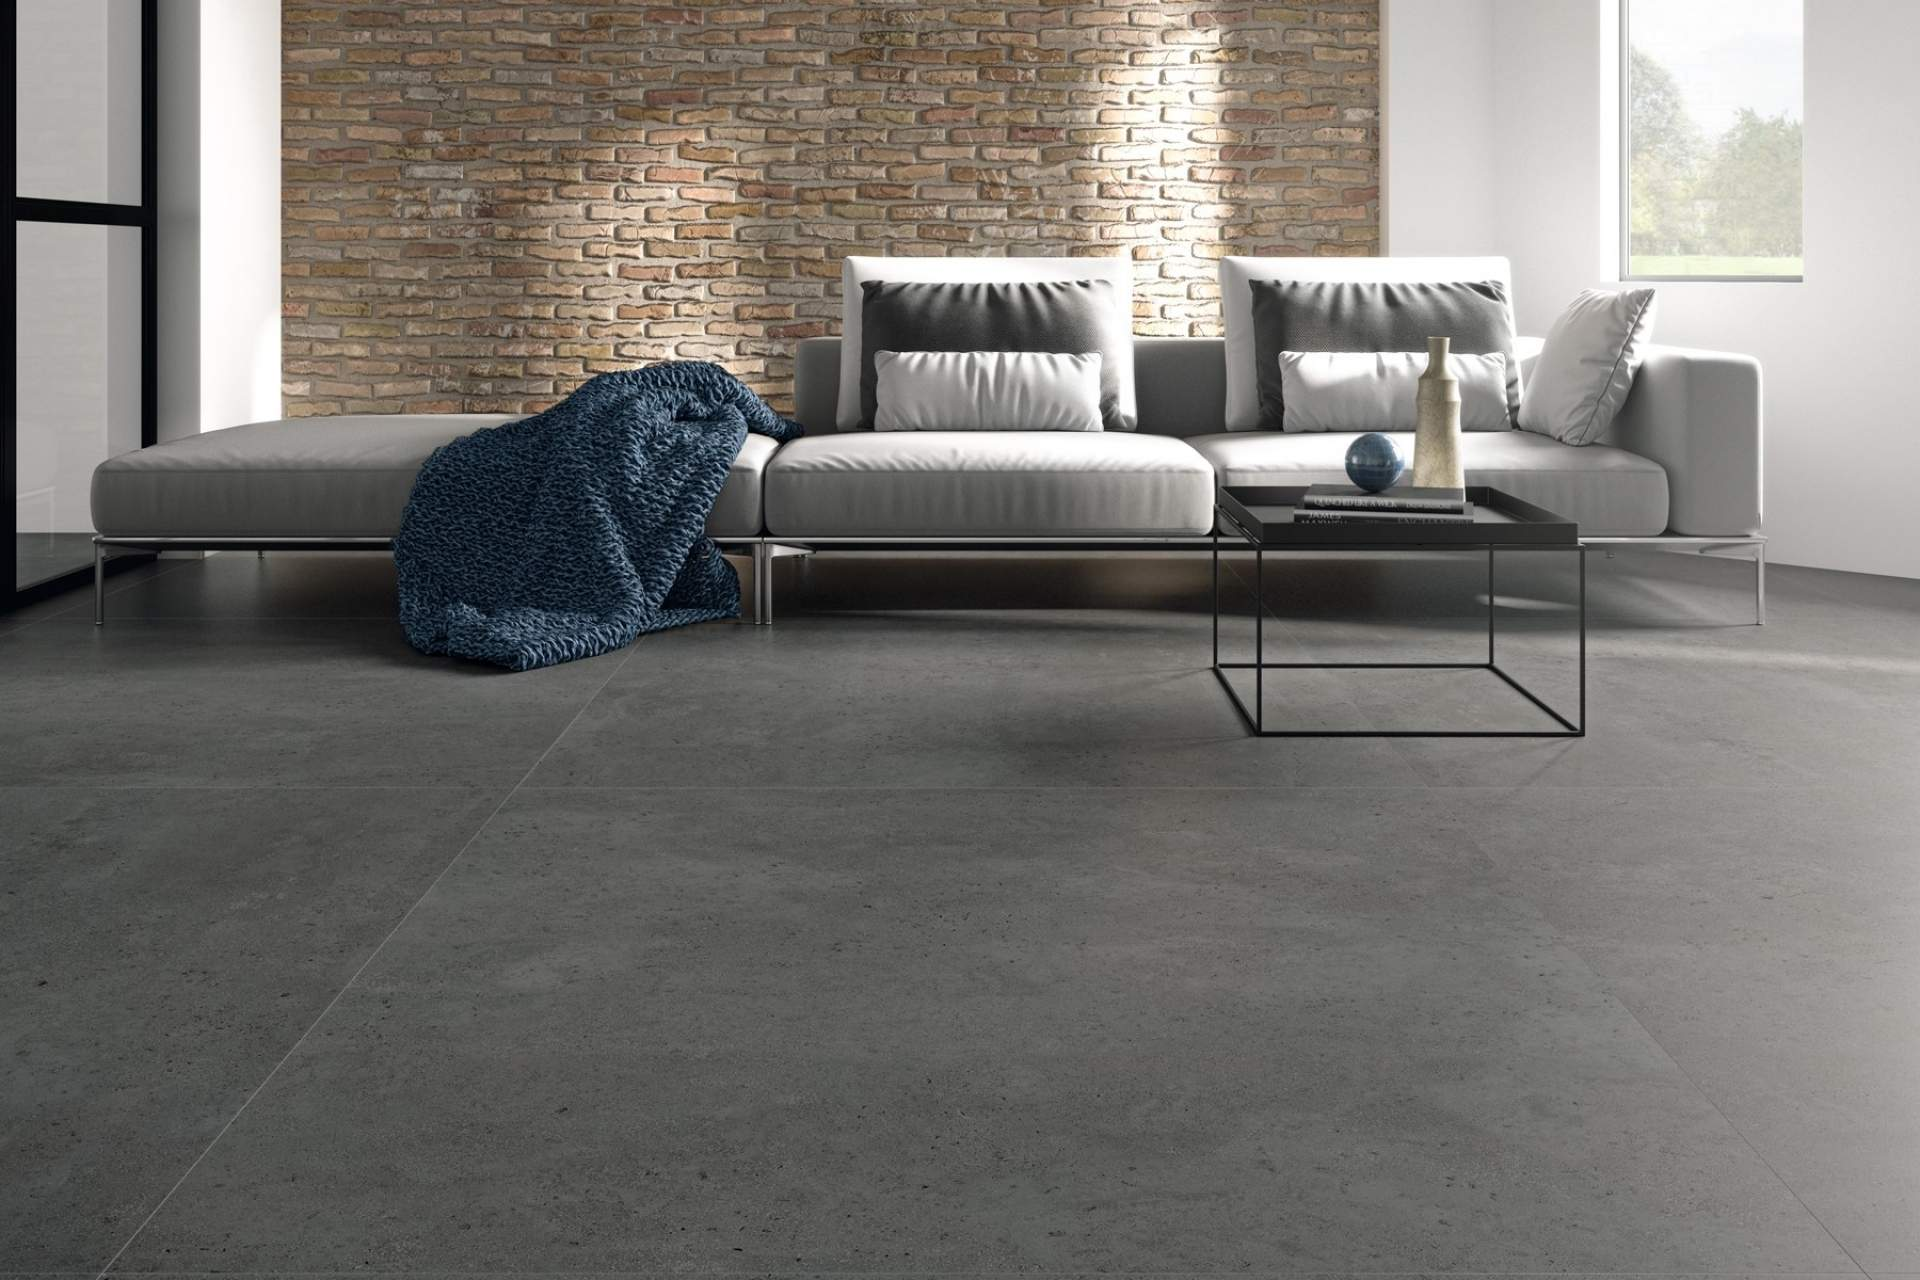 Industry open plan apartment setting using Grey Tile